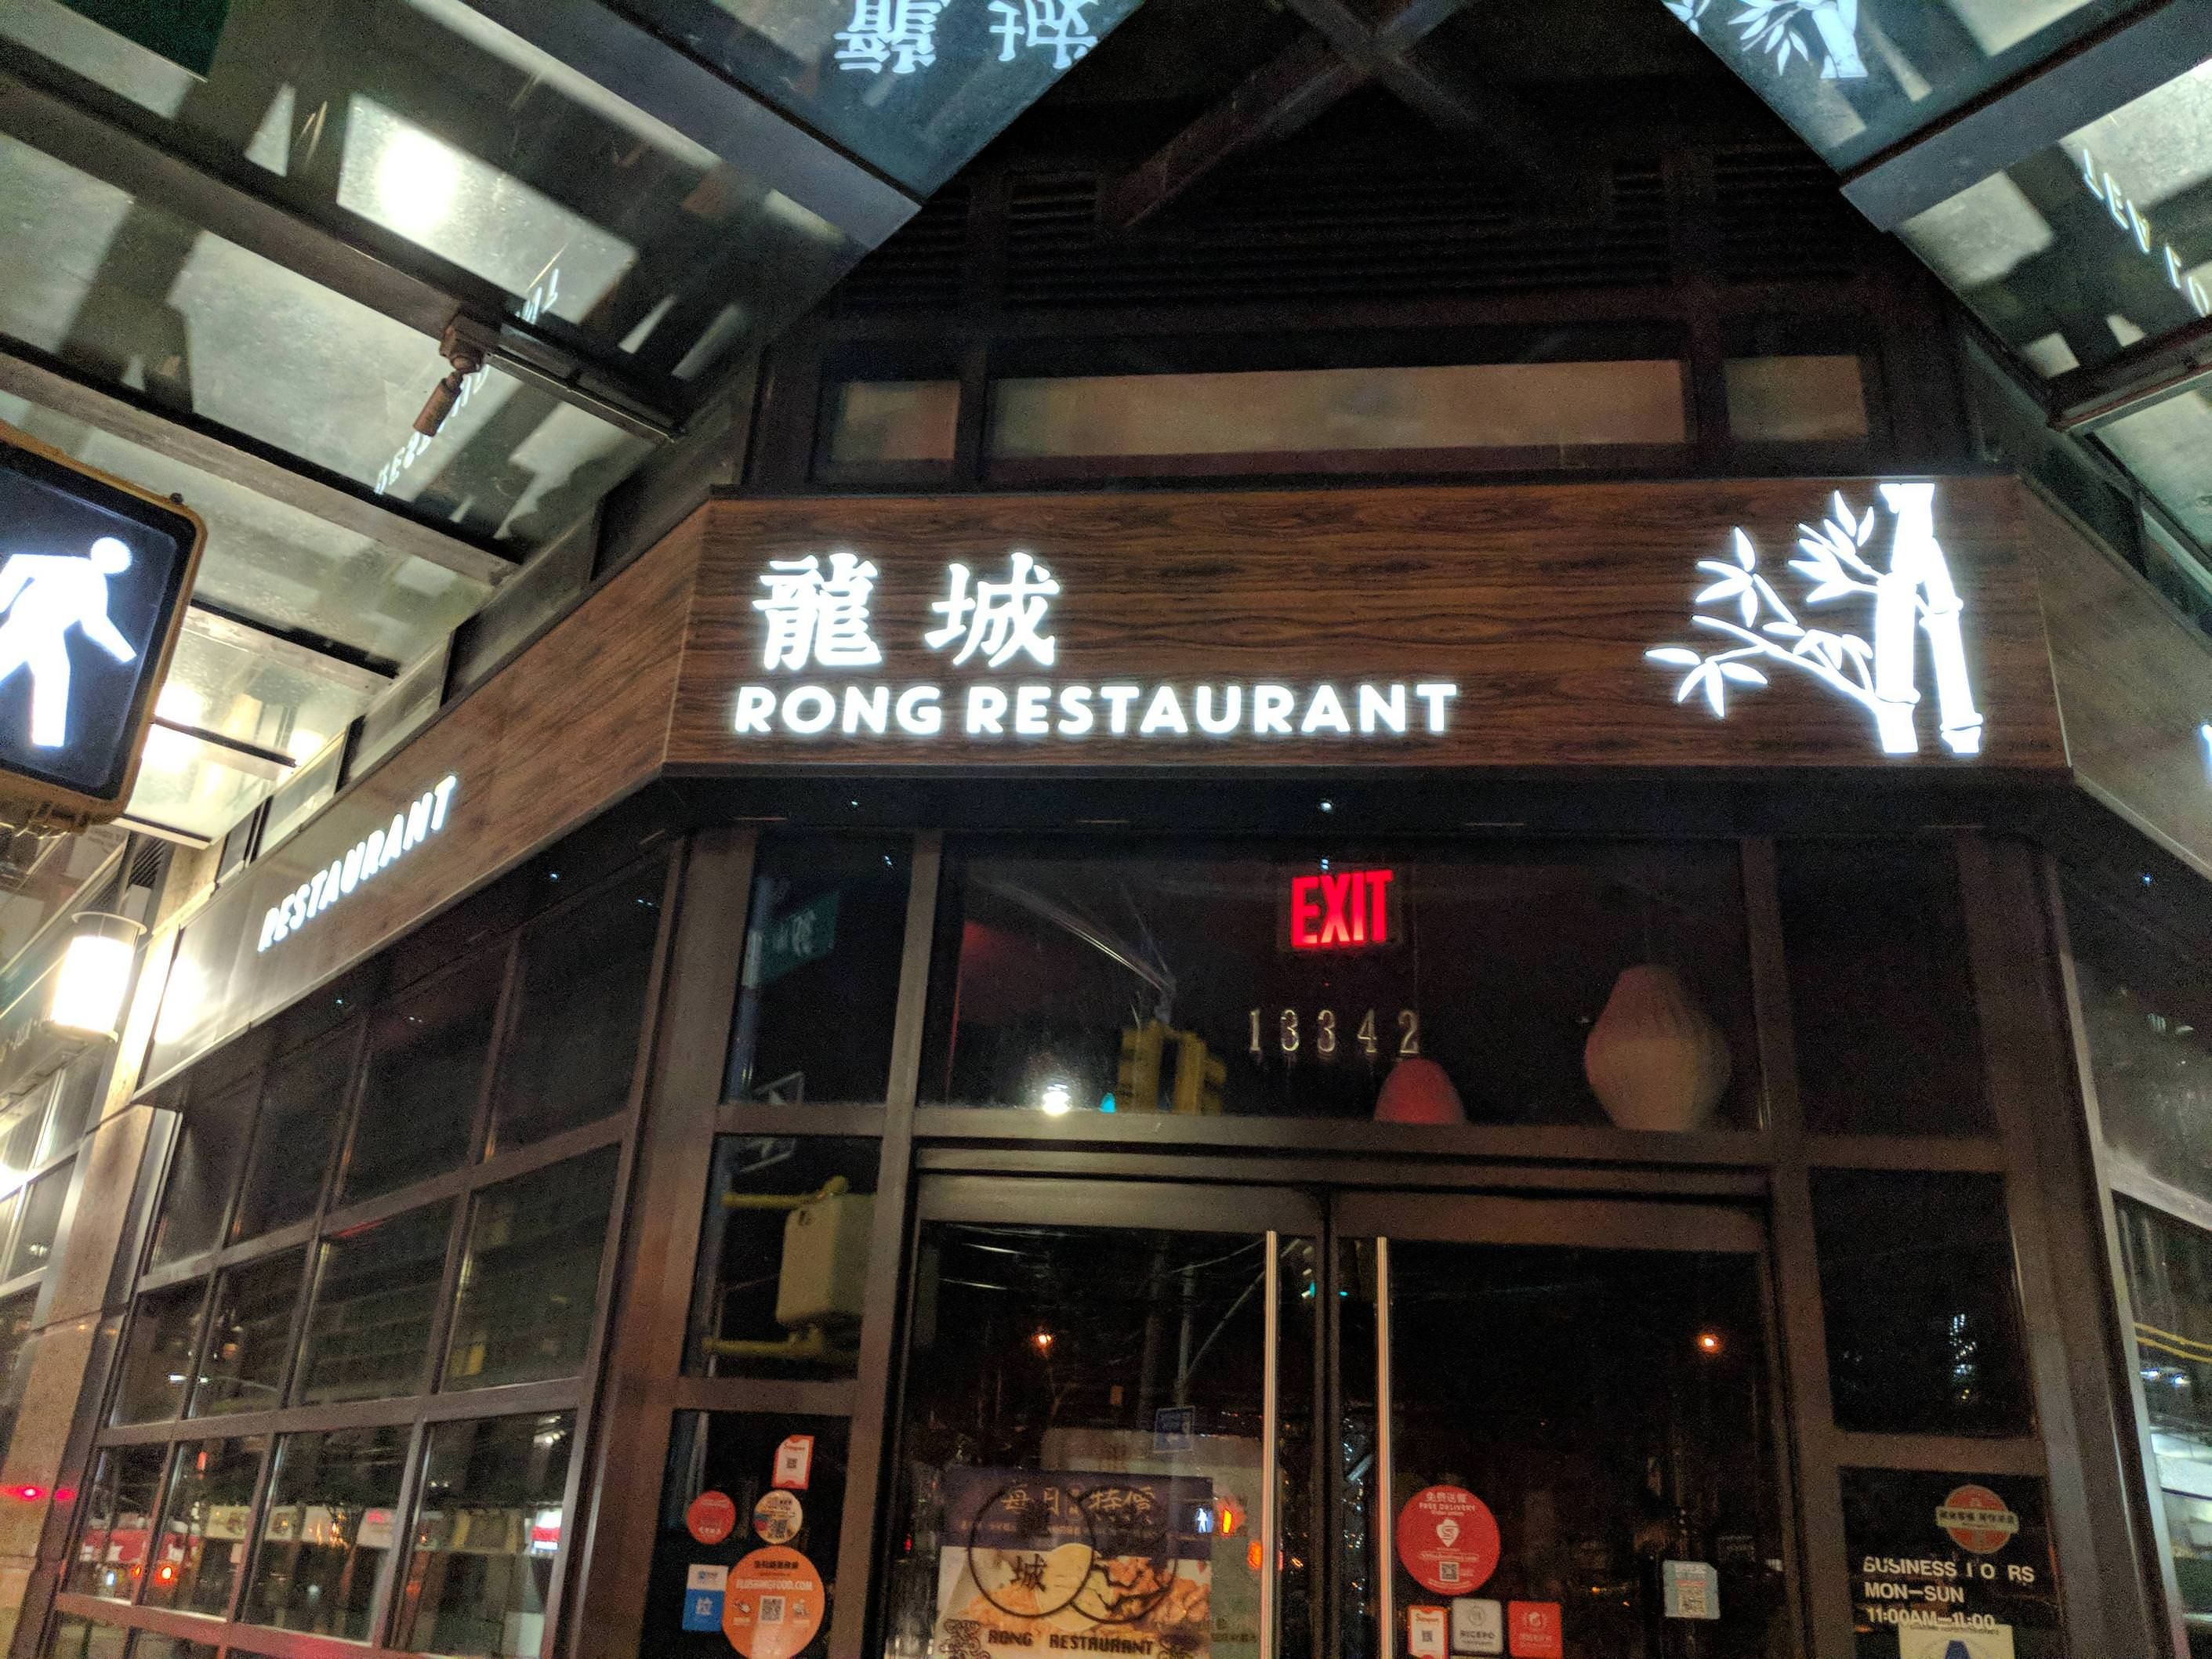 God damnit, I still can't find the right restaurant.